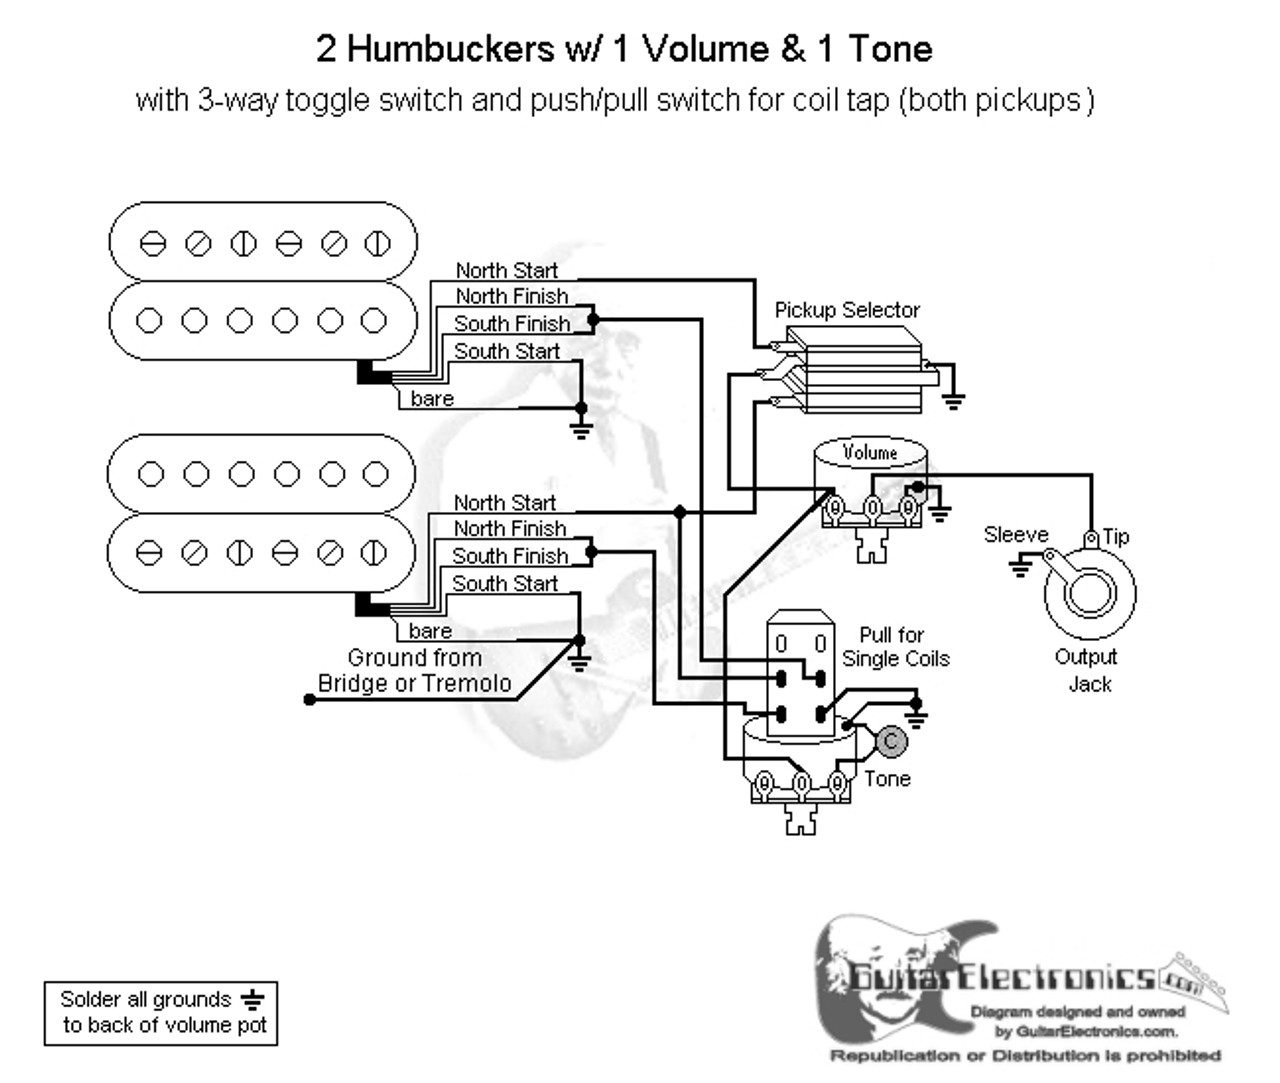 hight resolution of 2 humbuckers 3 way toggle switch 1 volume 1 tone coil tap mix wd2hh3t11 01 45715 1470694374 jpg